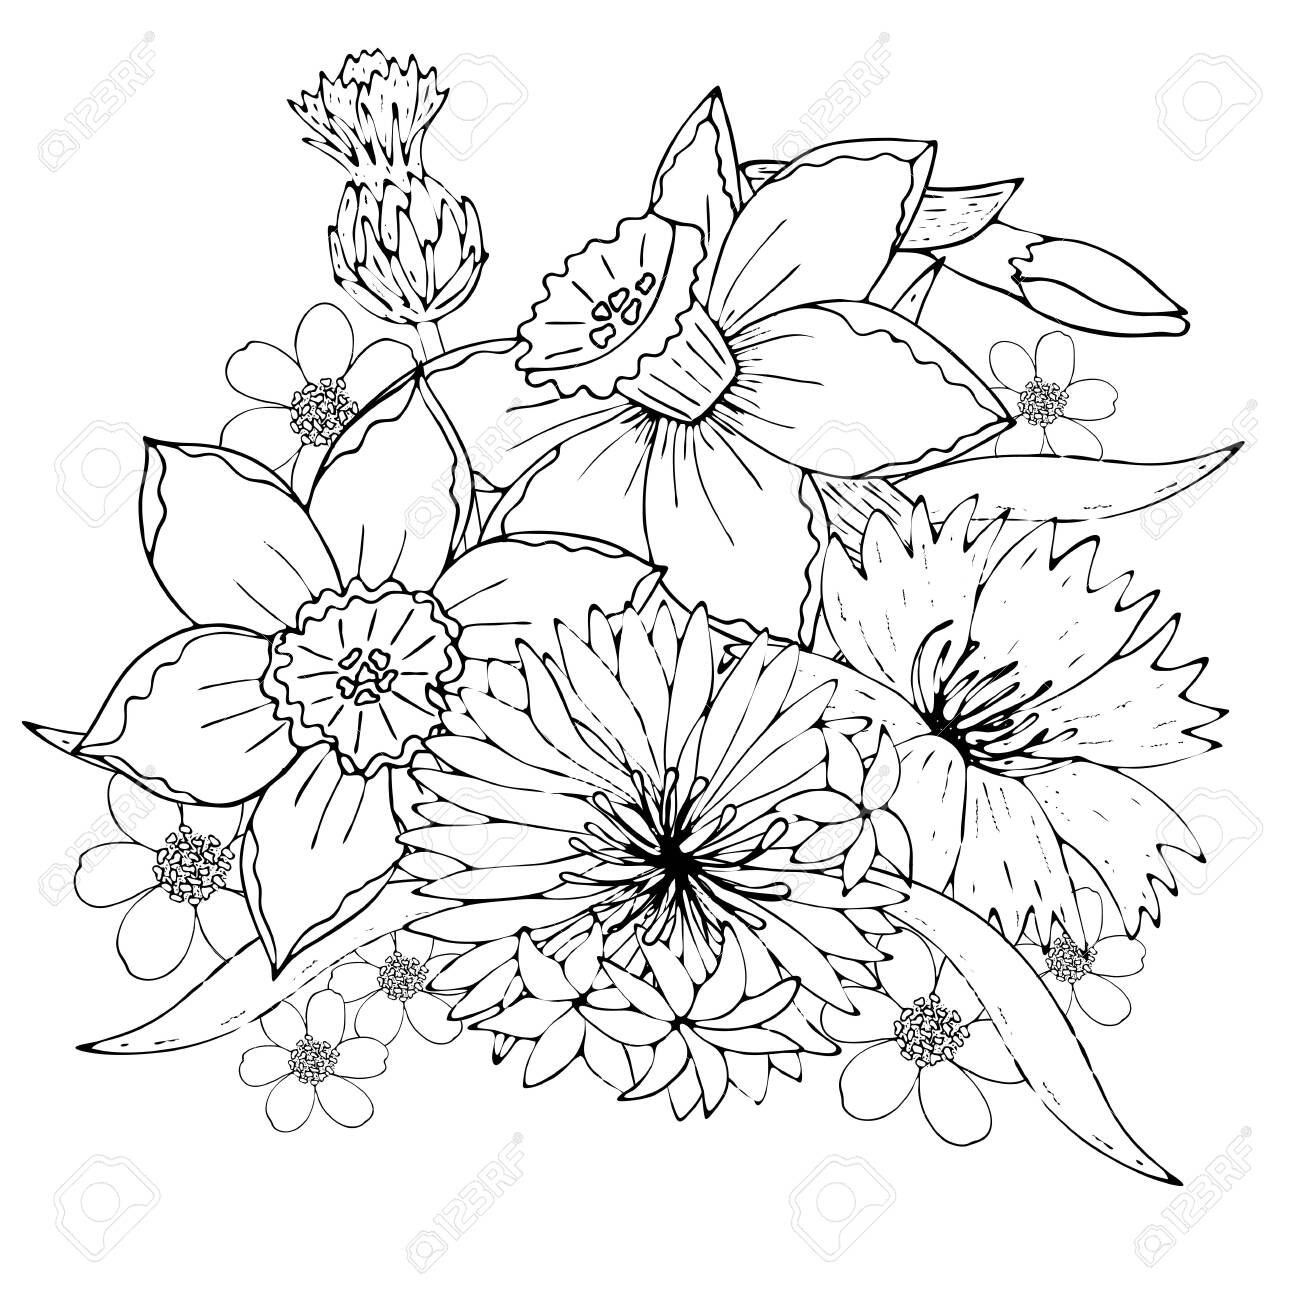 Floral Template With Black Line Field Flowers Botanical Design